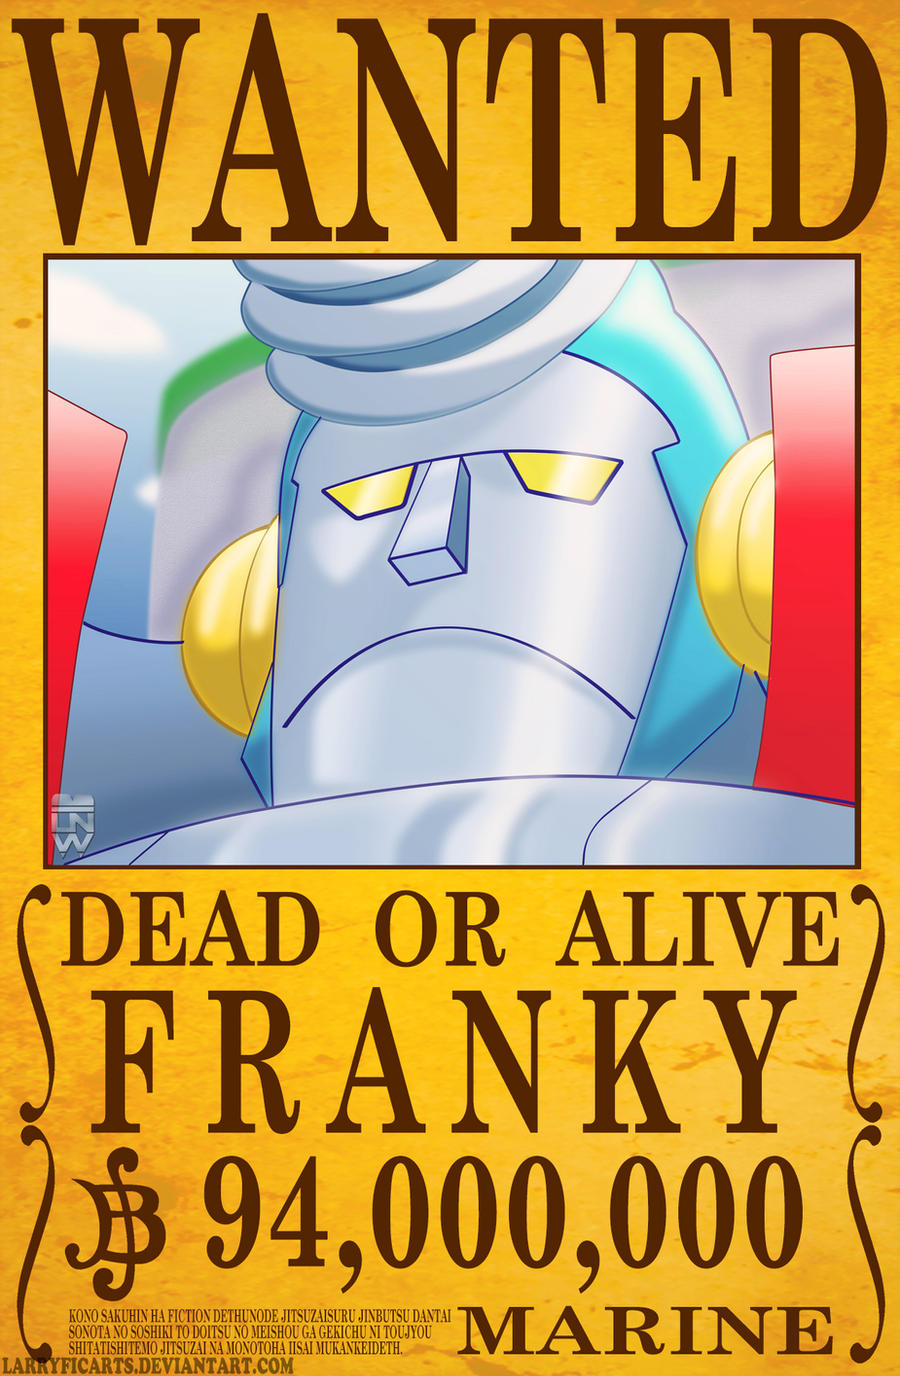 Franky Wanted Poster by LarryficArts on DeviantArt